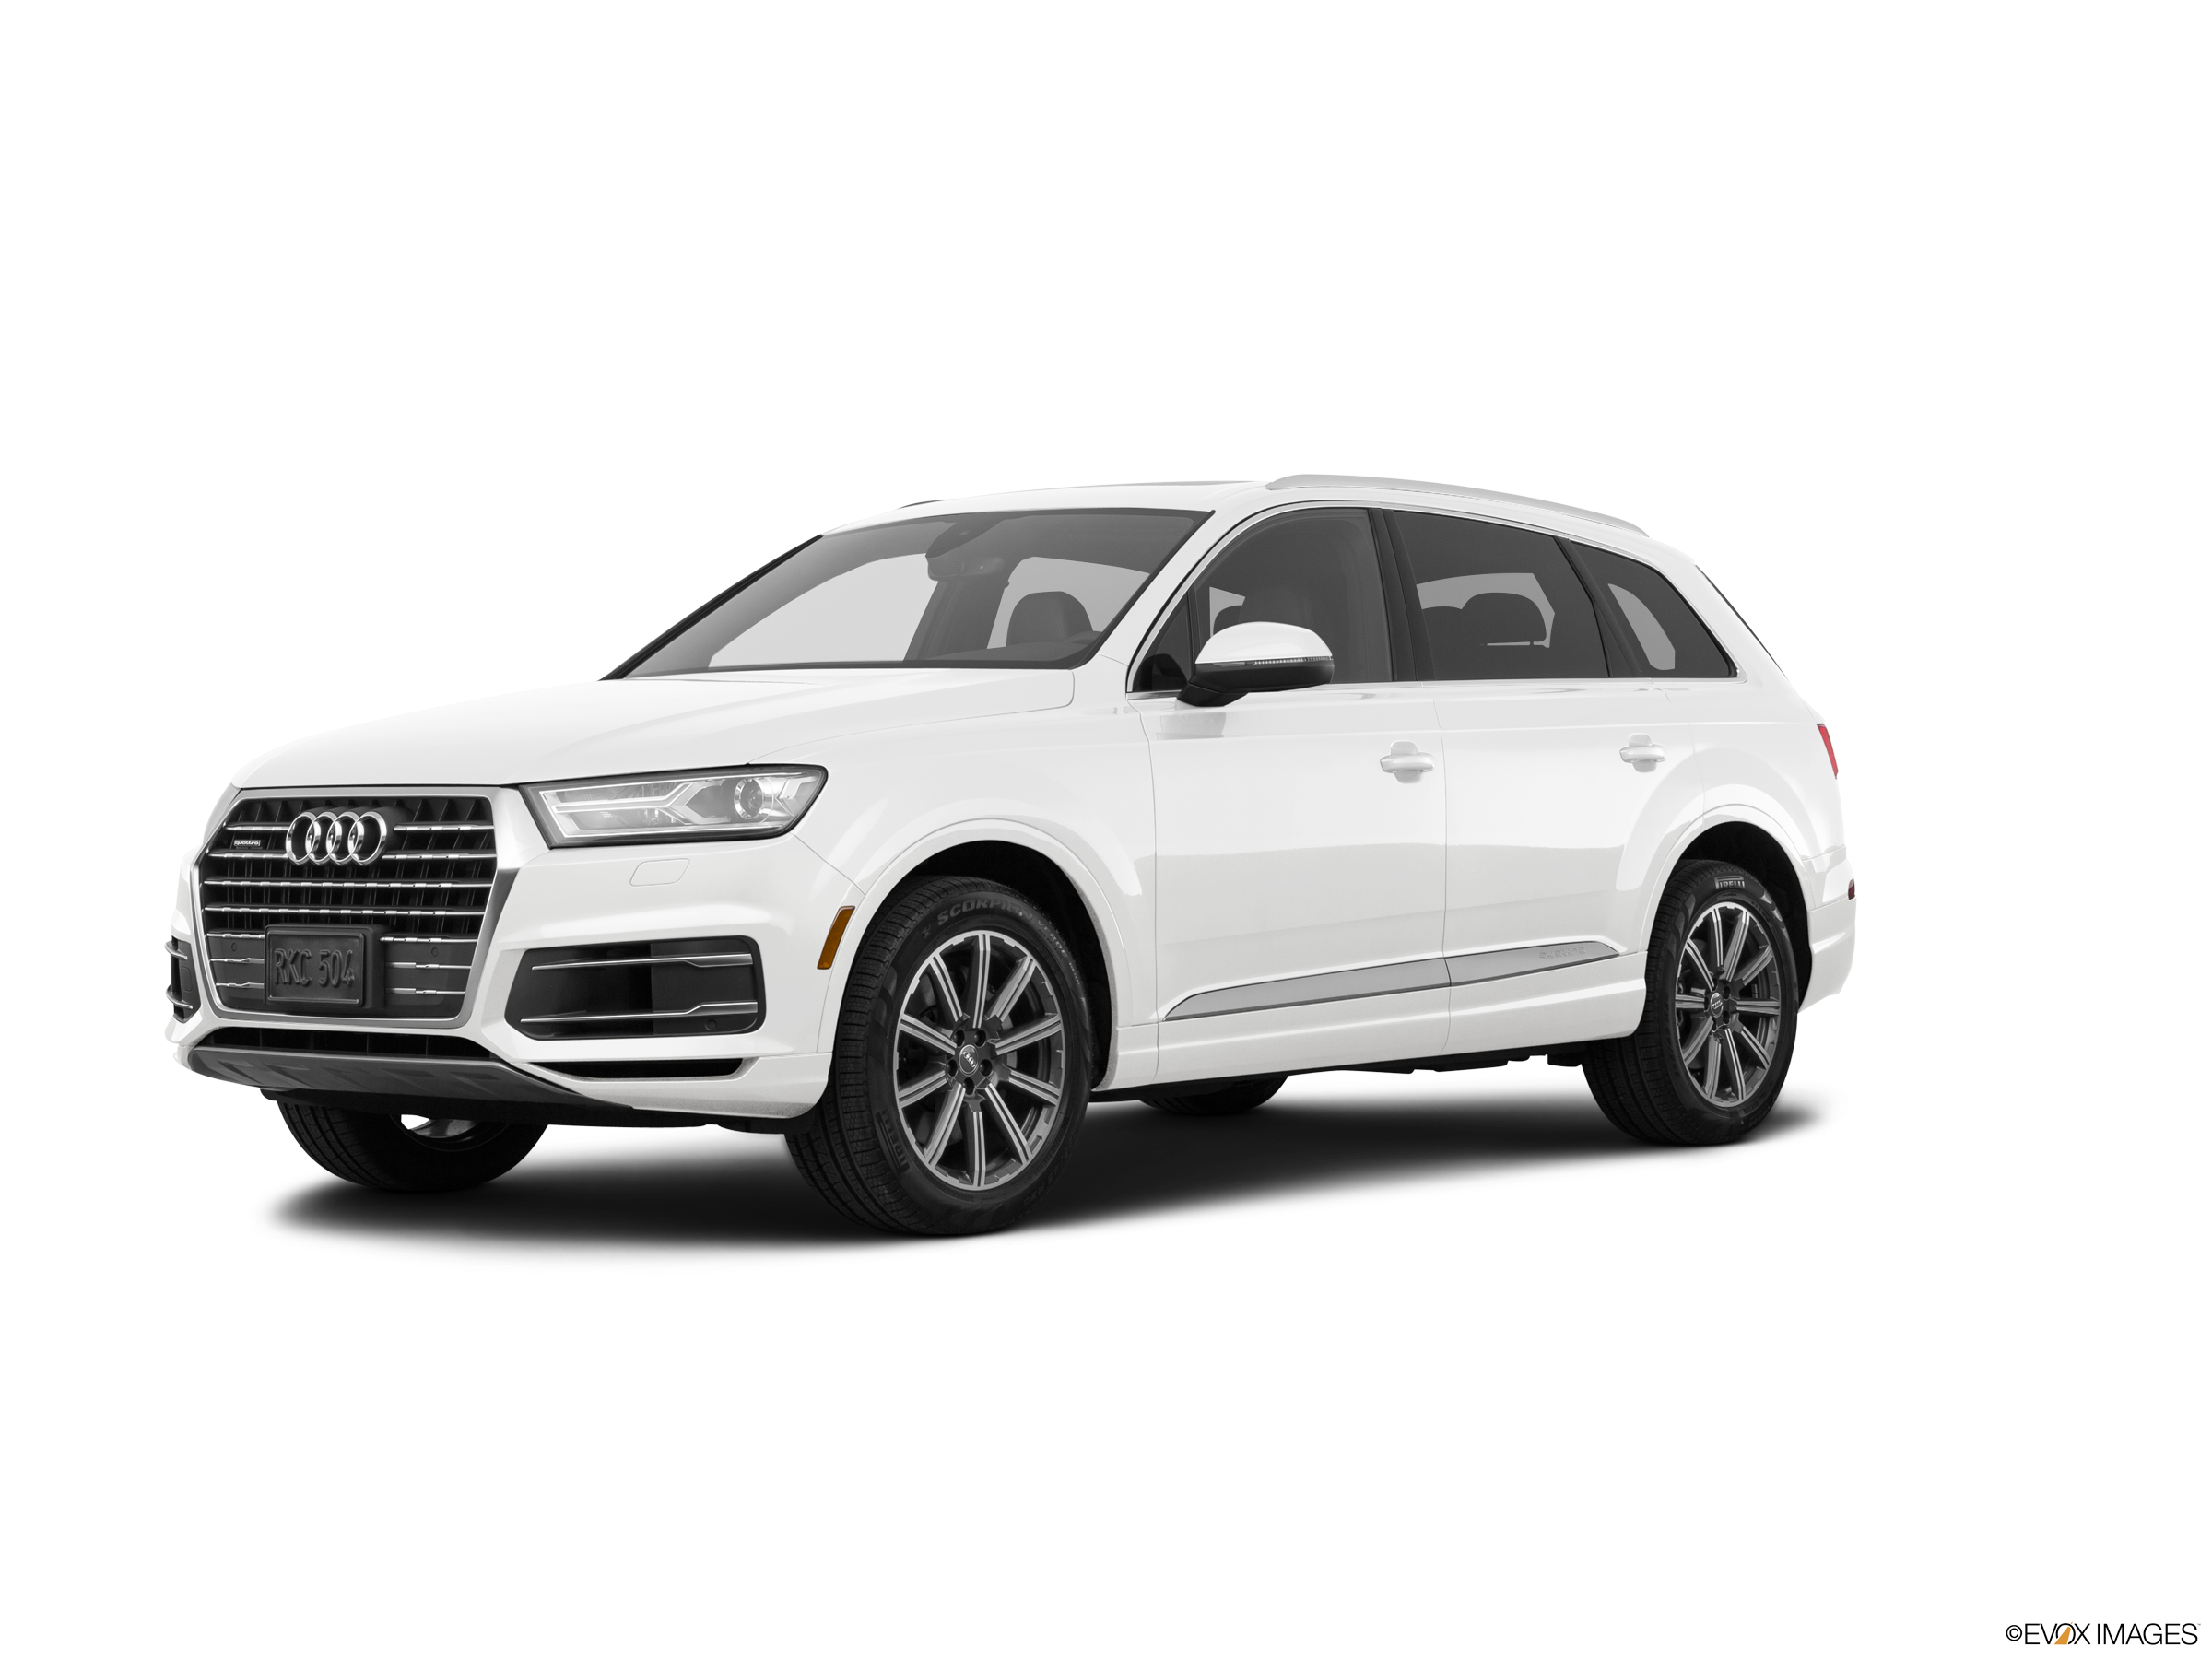 Top Expert Rated SUVS of 2017 - 2017 Audi Q7